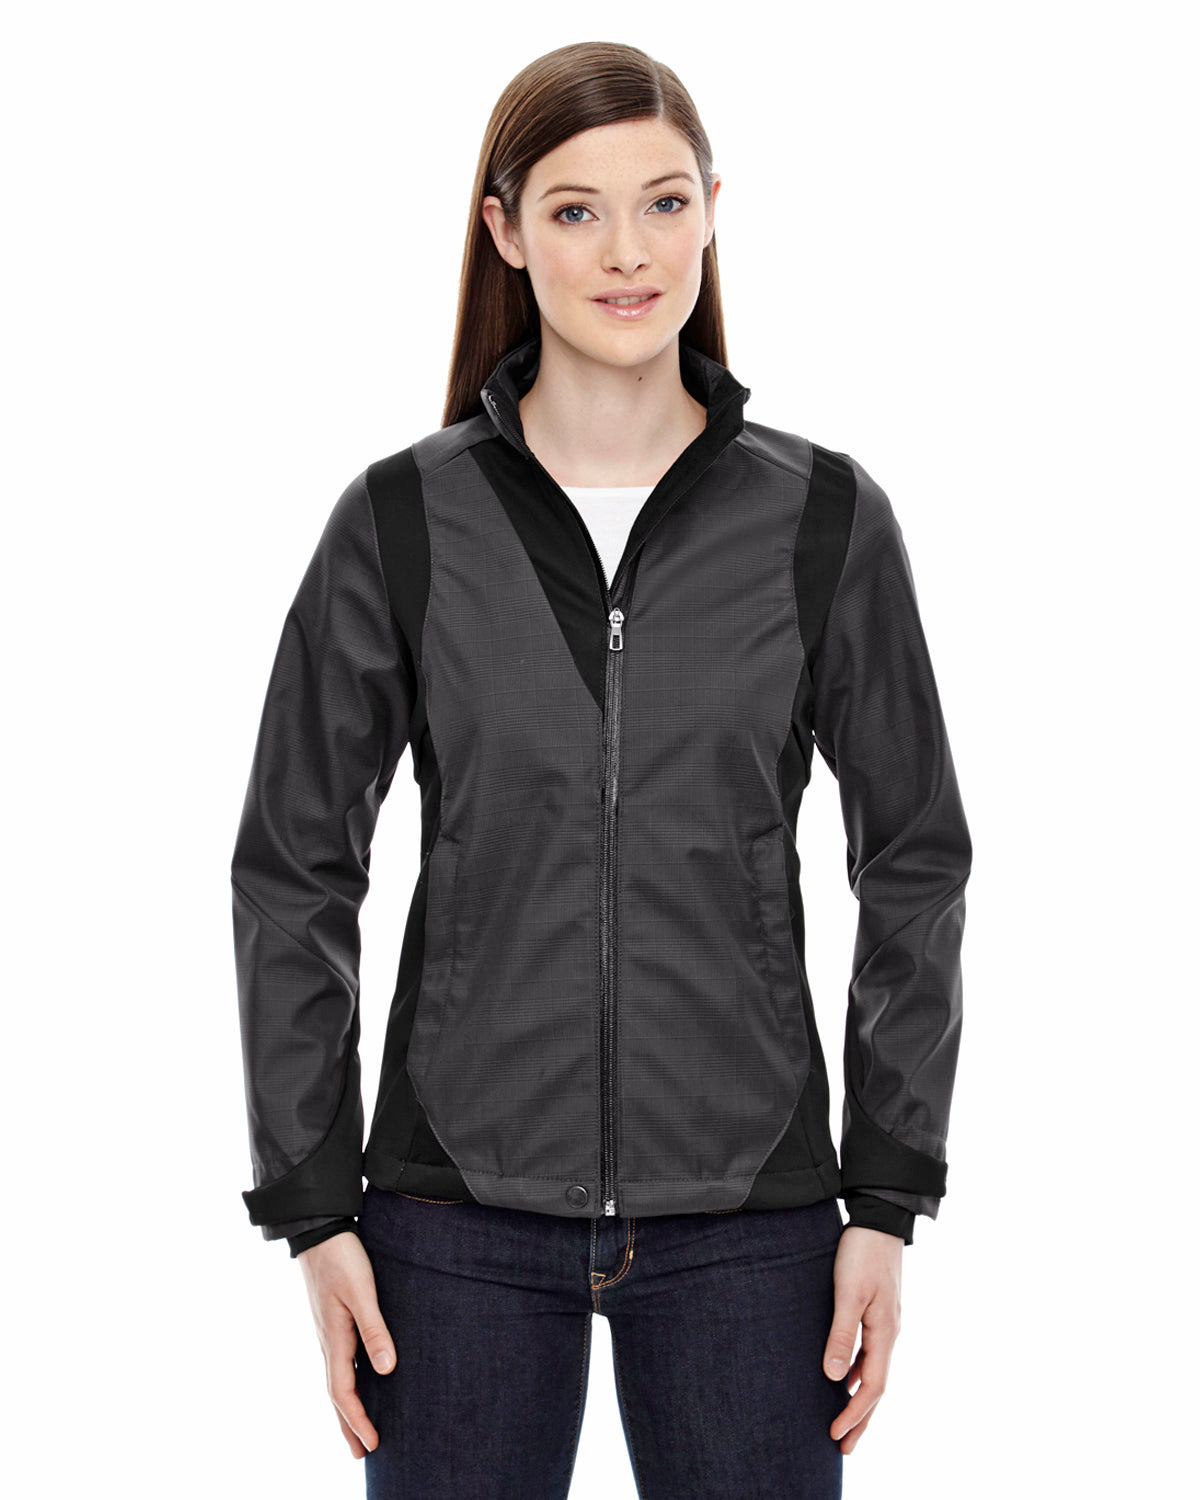 NORTH END LADIES THREE LAYER, TWO TONED SOFT SHELL JACKET WITH HEAT REFLECT